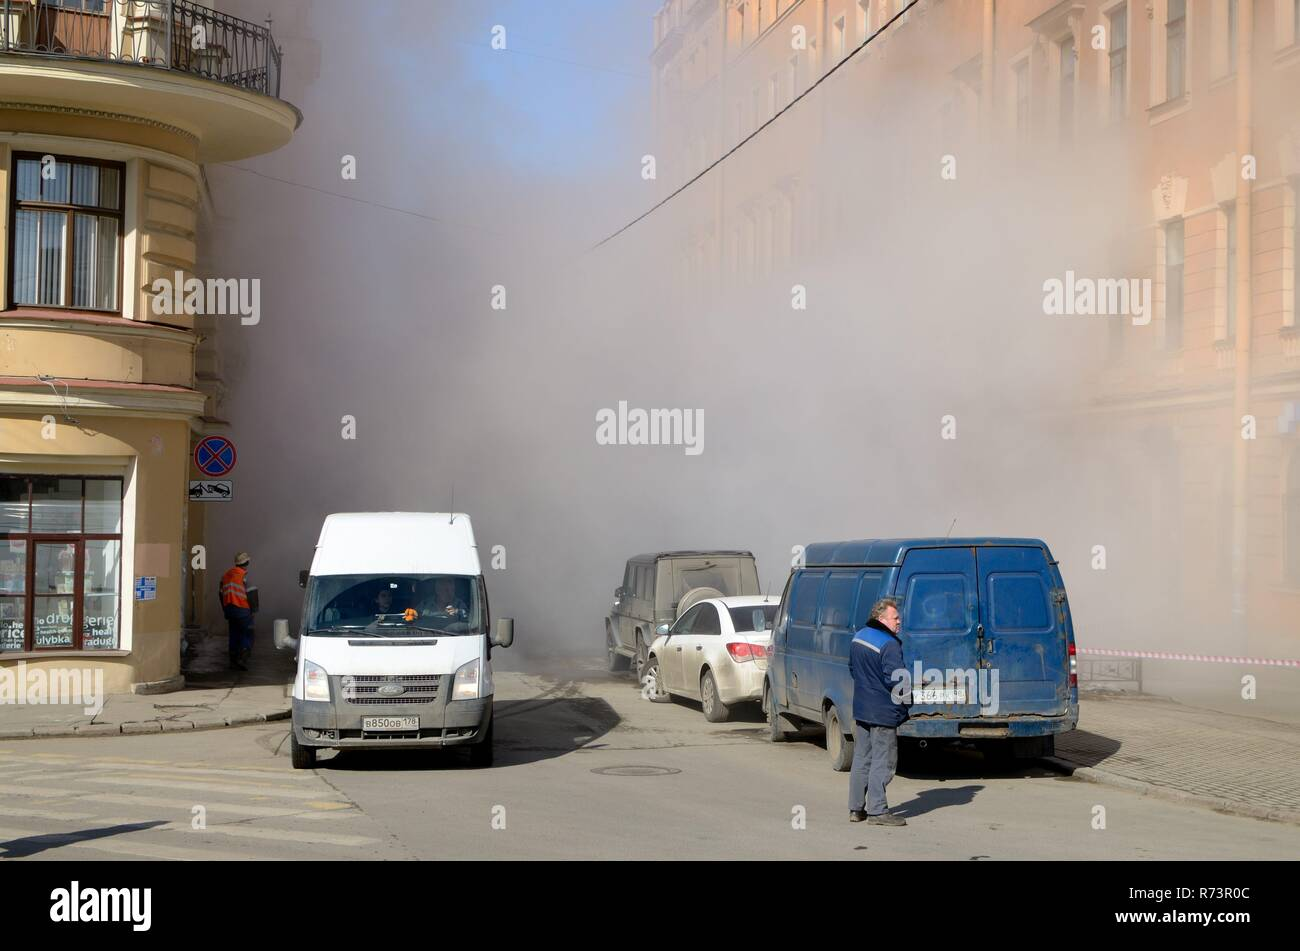 Saint-Petersburg.Russia.March.28.2018.There was a breakthrough of a heating main with hot water.The incident occurred on Stolyarnyy pereulok near Senn - Stock Image